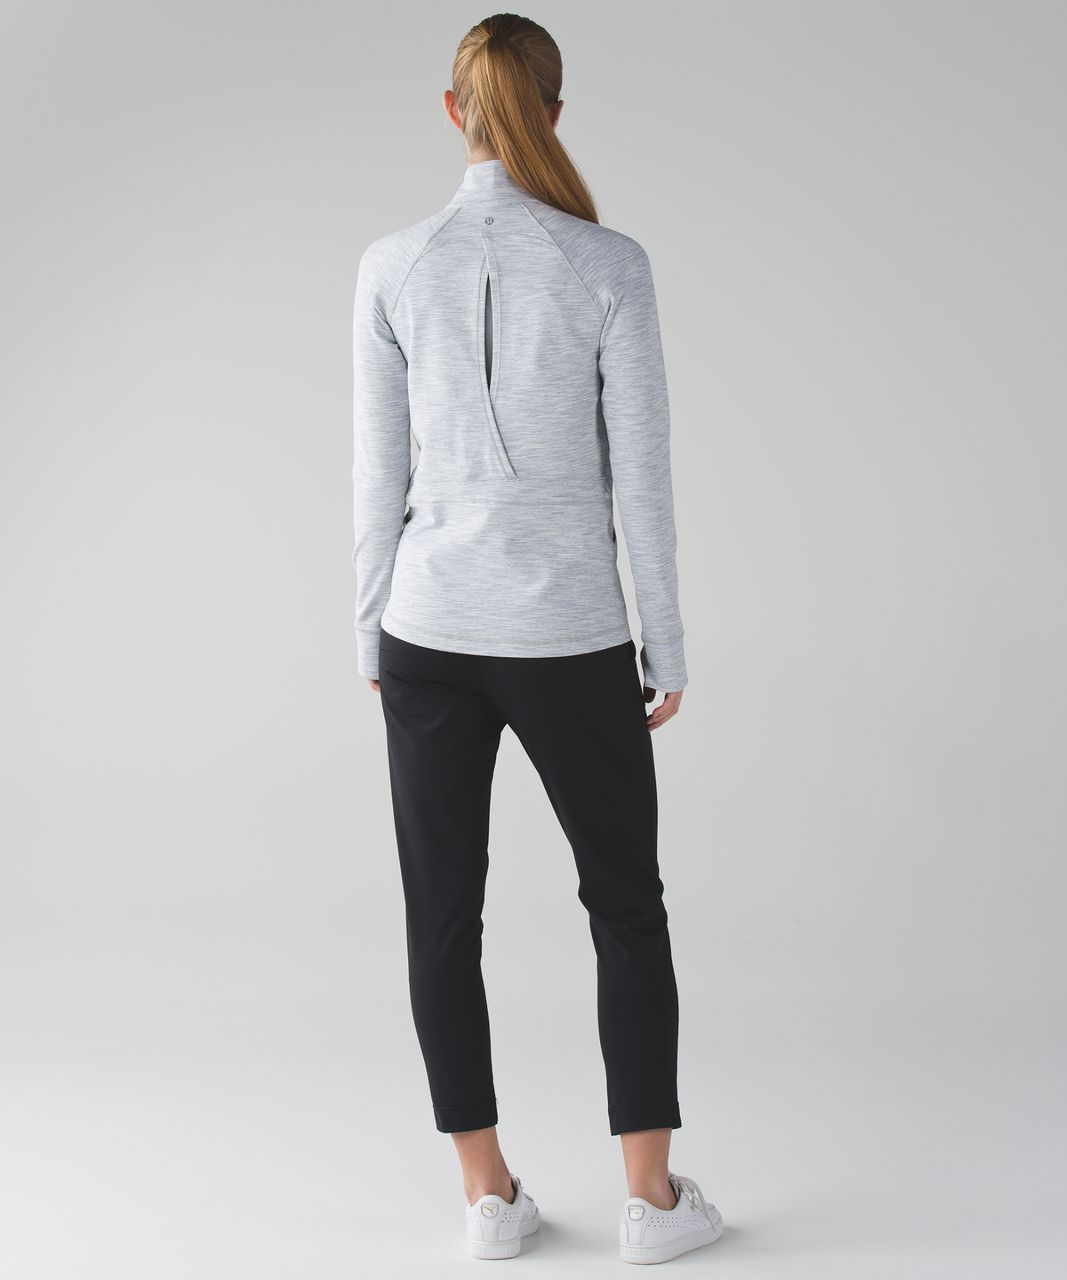 Lululemon Sunshine Salutation Jacket - Wee Are From Space Nimbus Battleship / Battleship